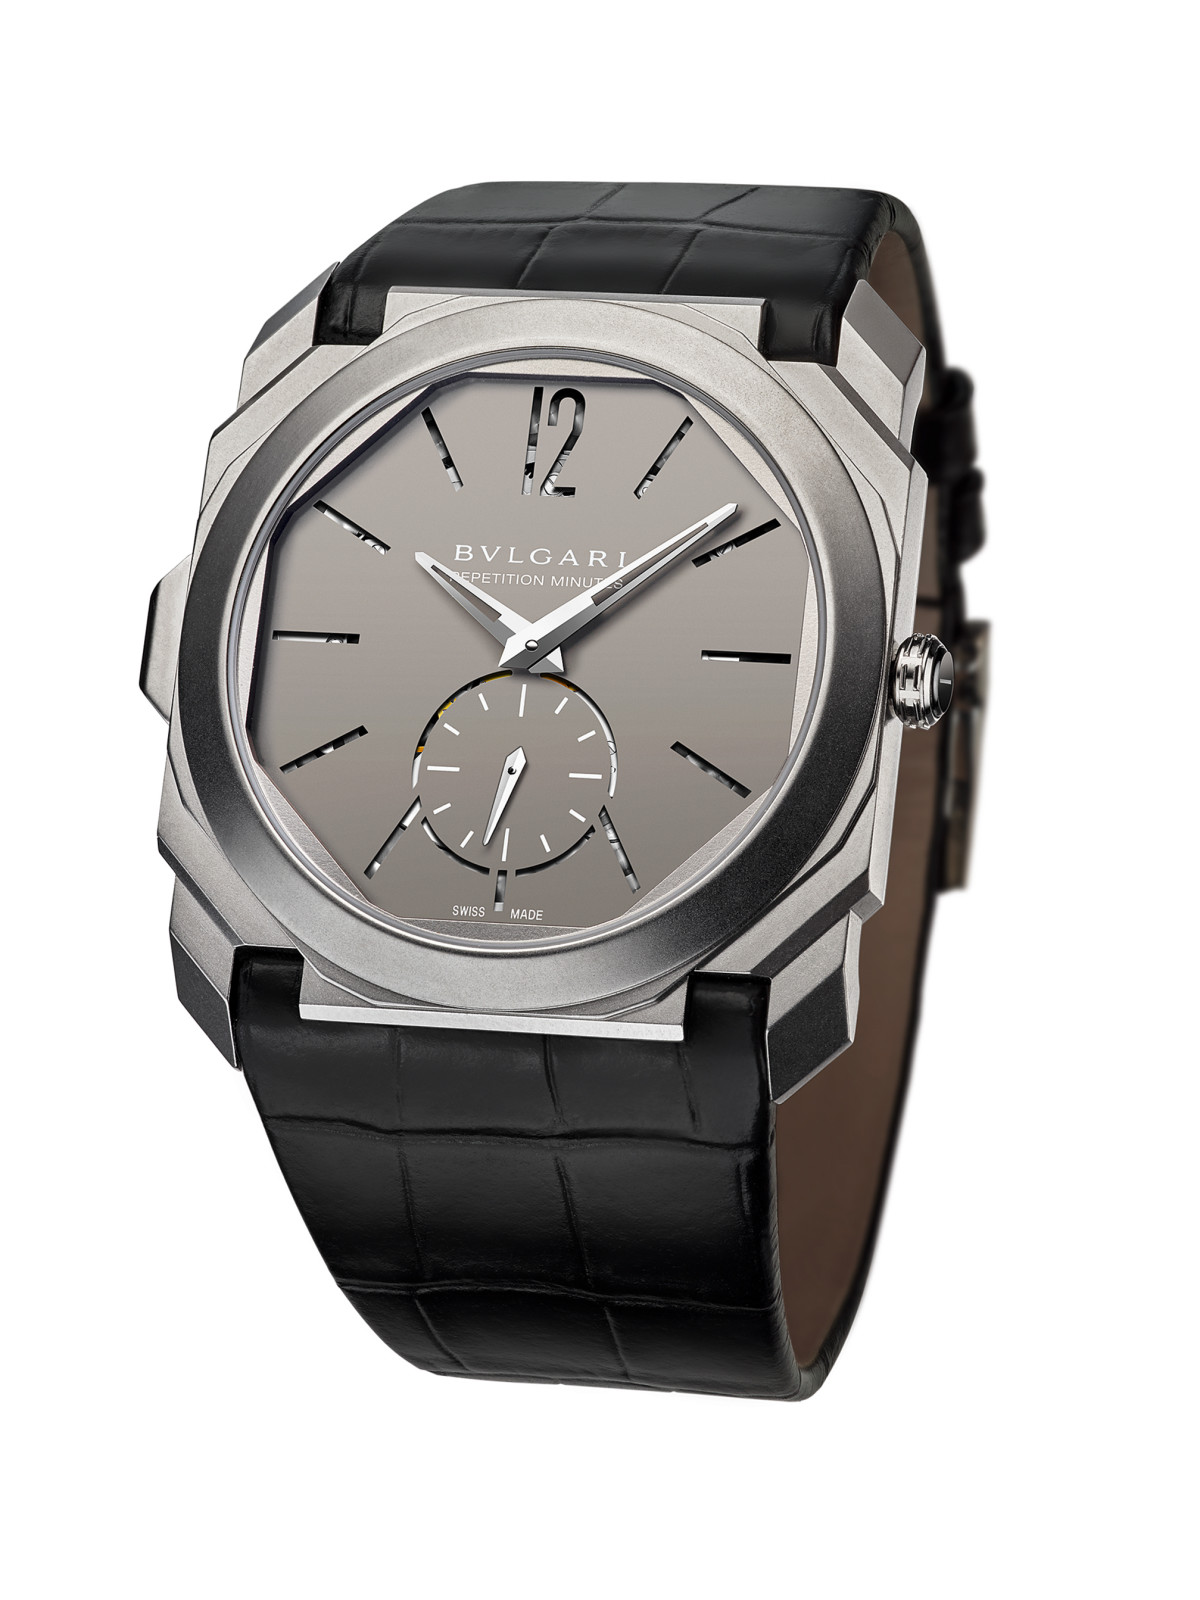 Bulgari Octo Finissimo men's watch